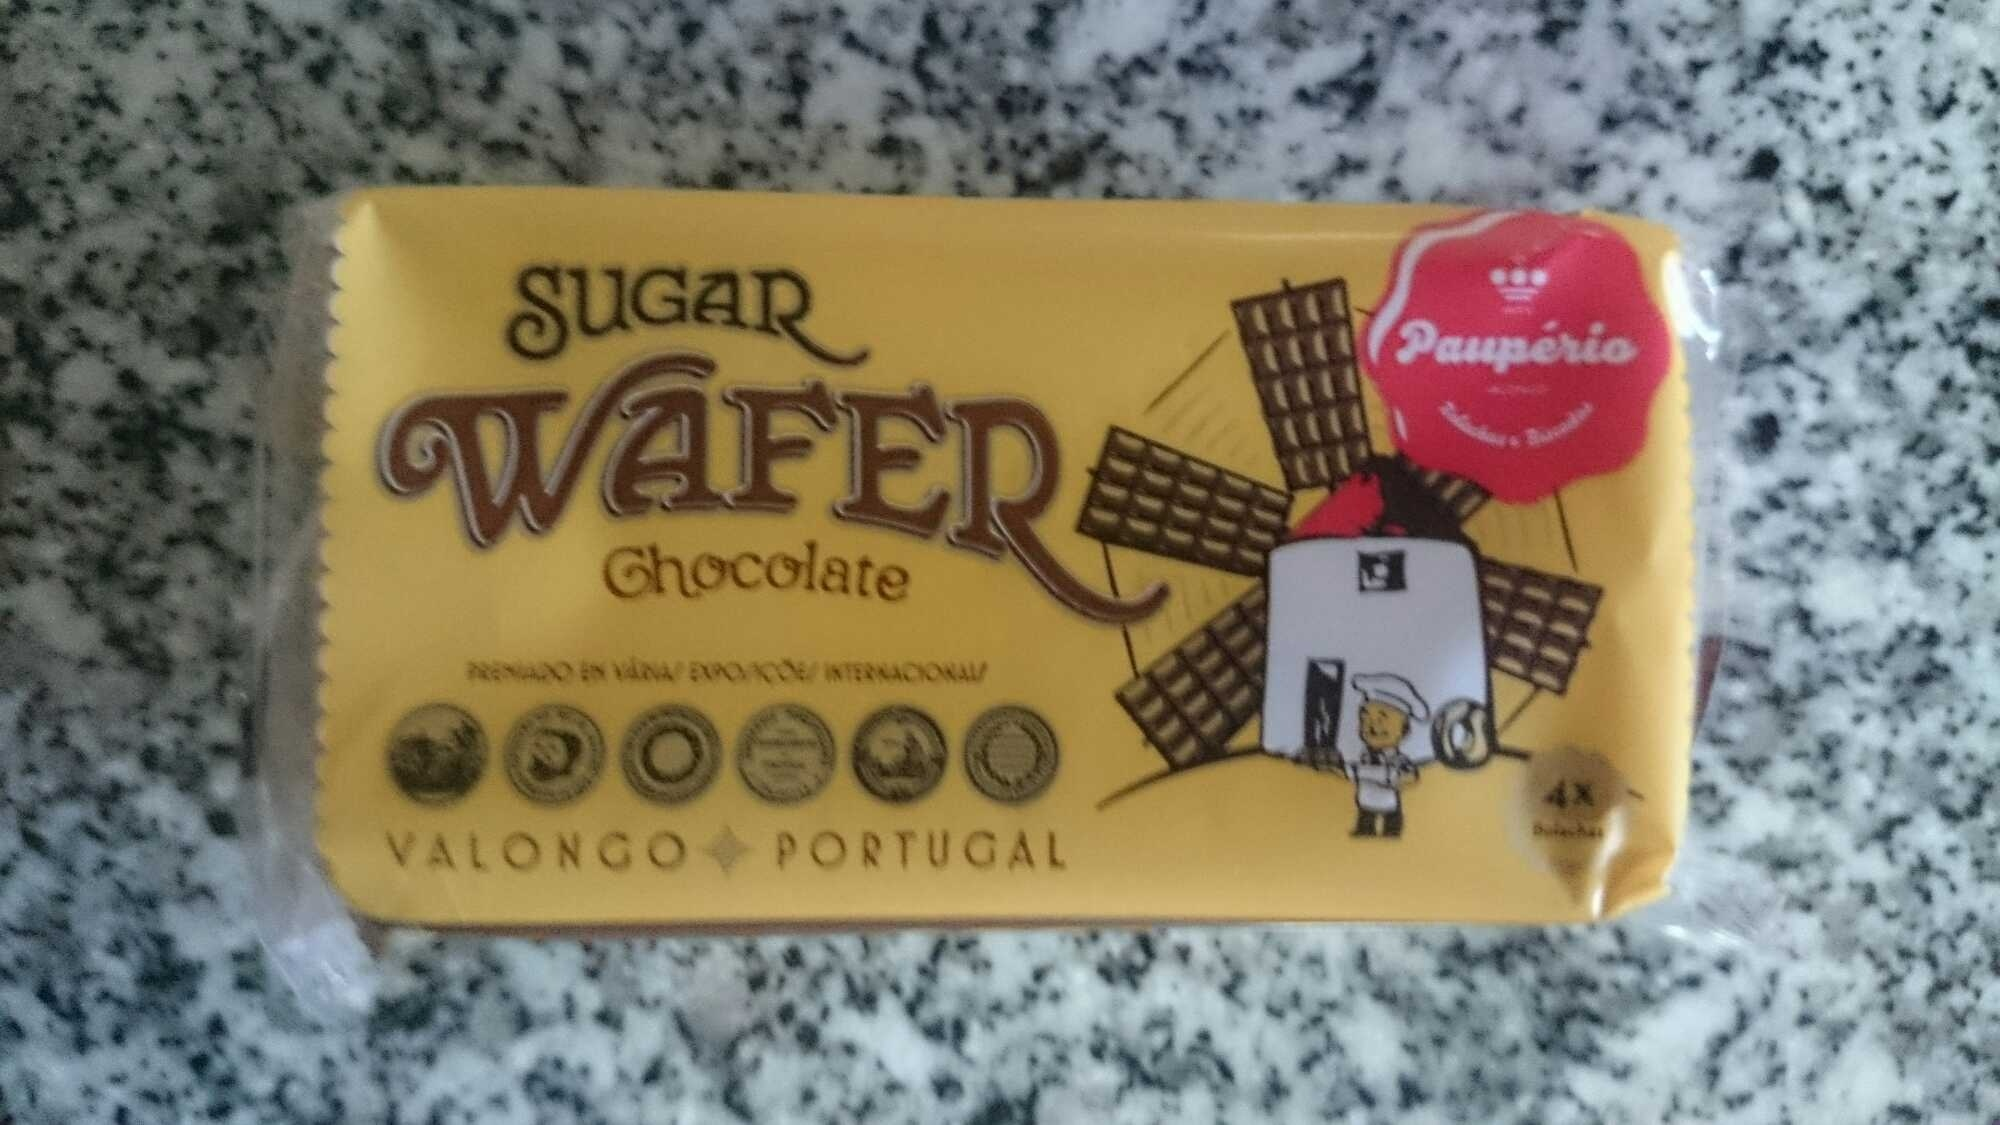 Sugar Wafer Chocolate - Product - pt